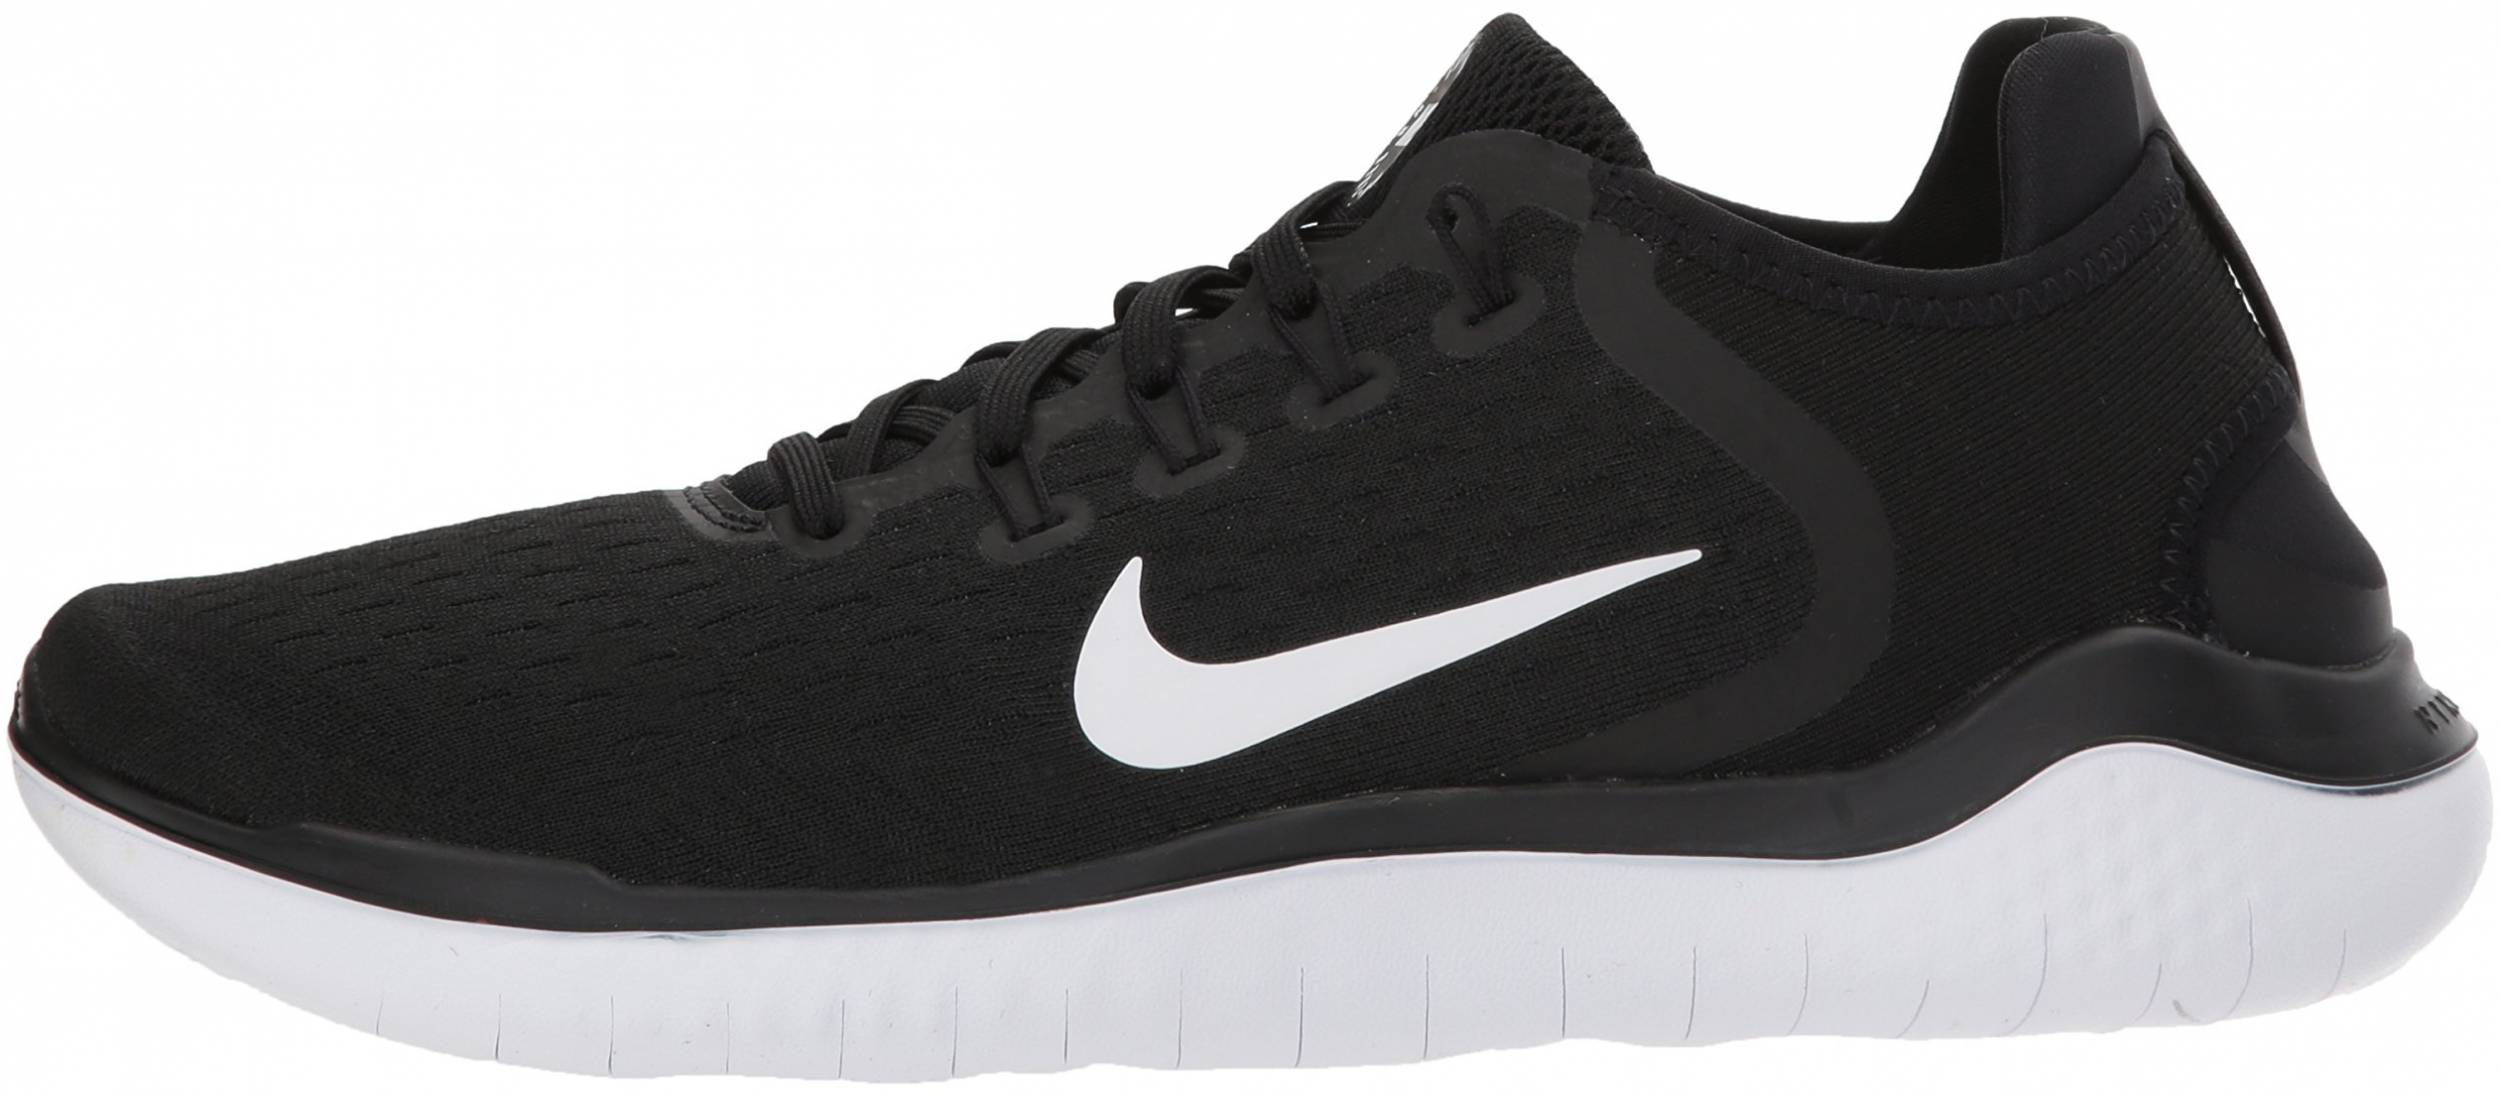 Only $80 + Review of Nike Free RN 2018